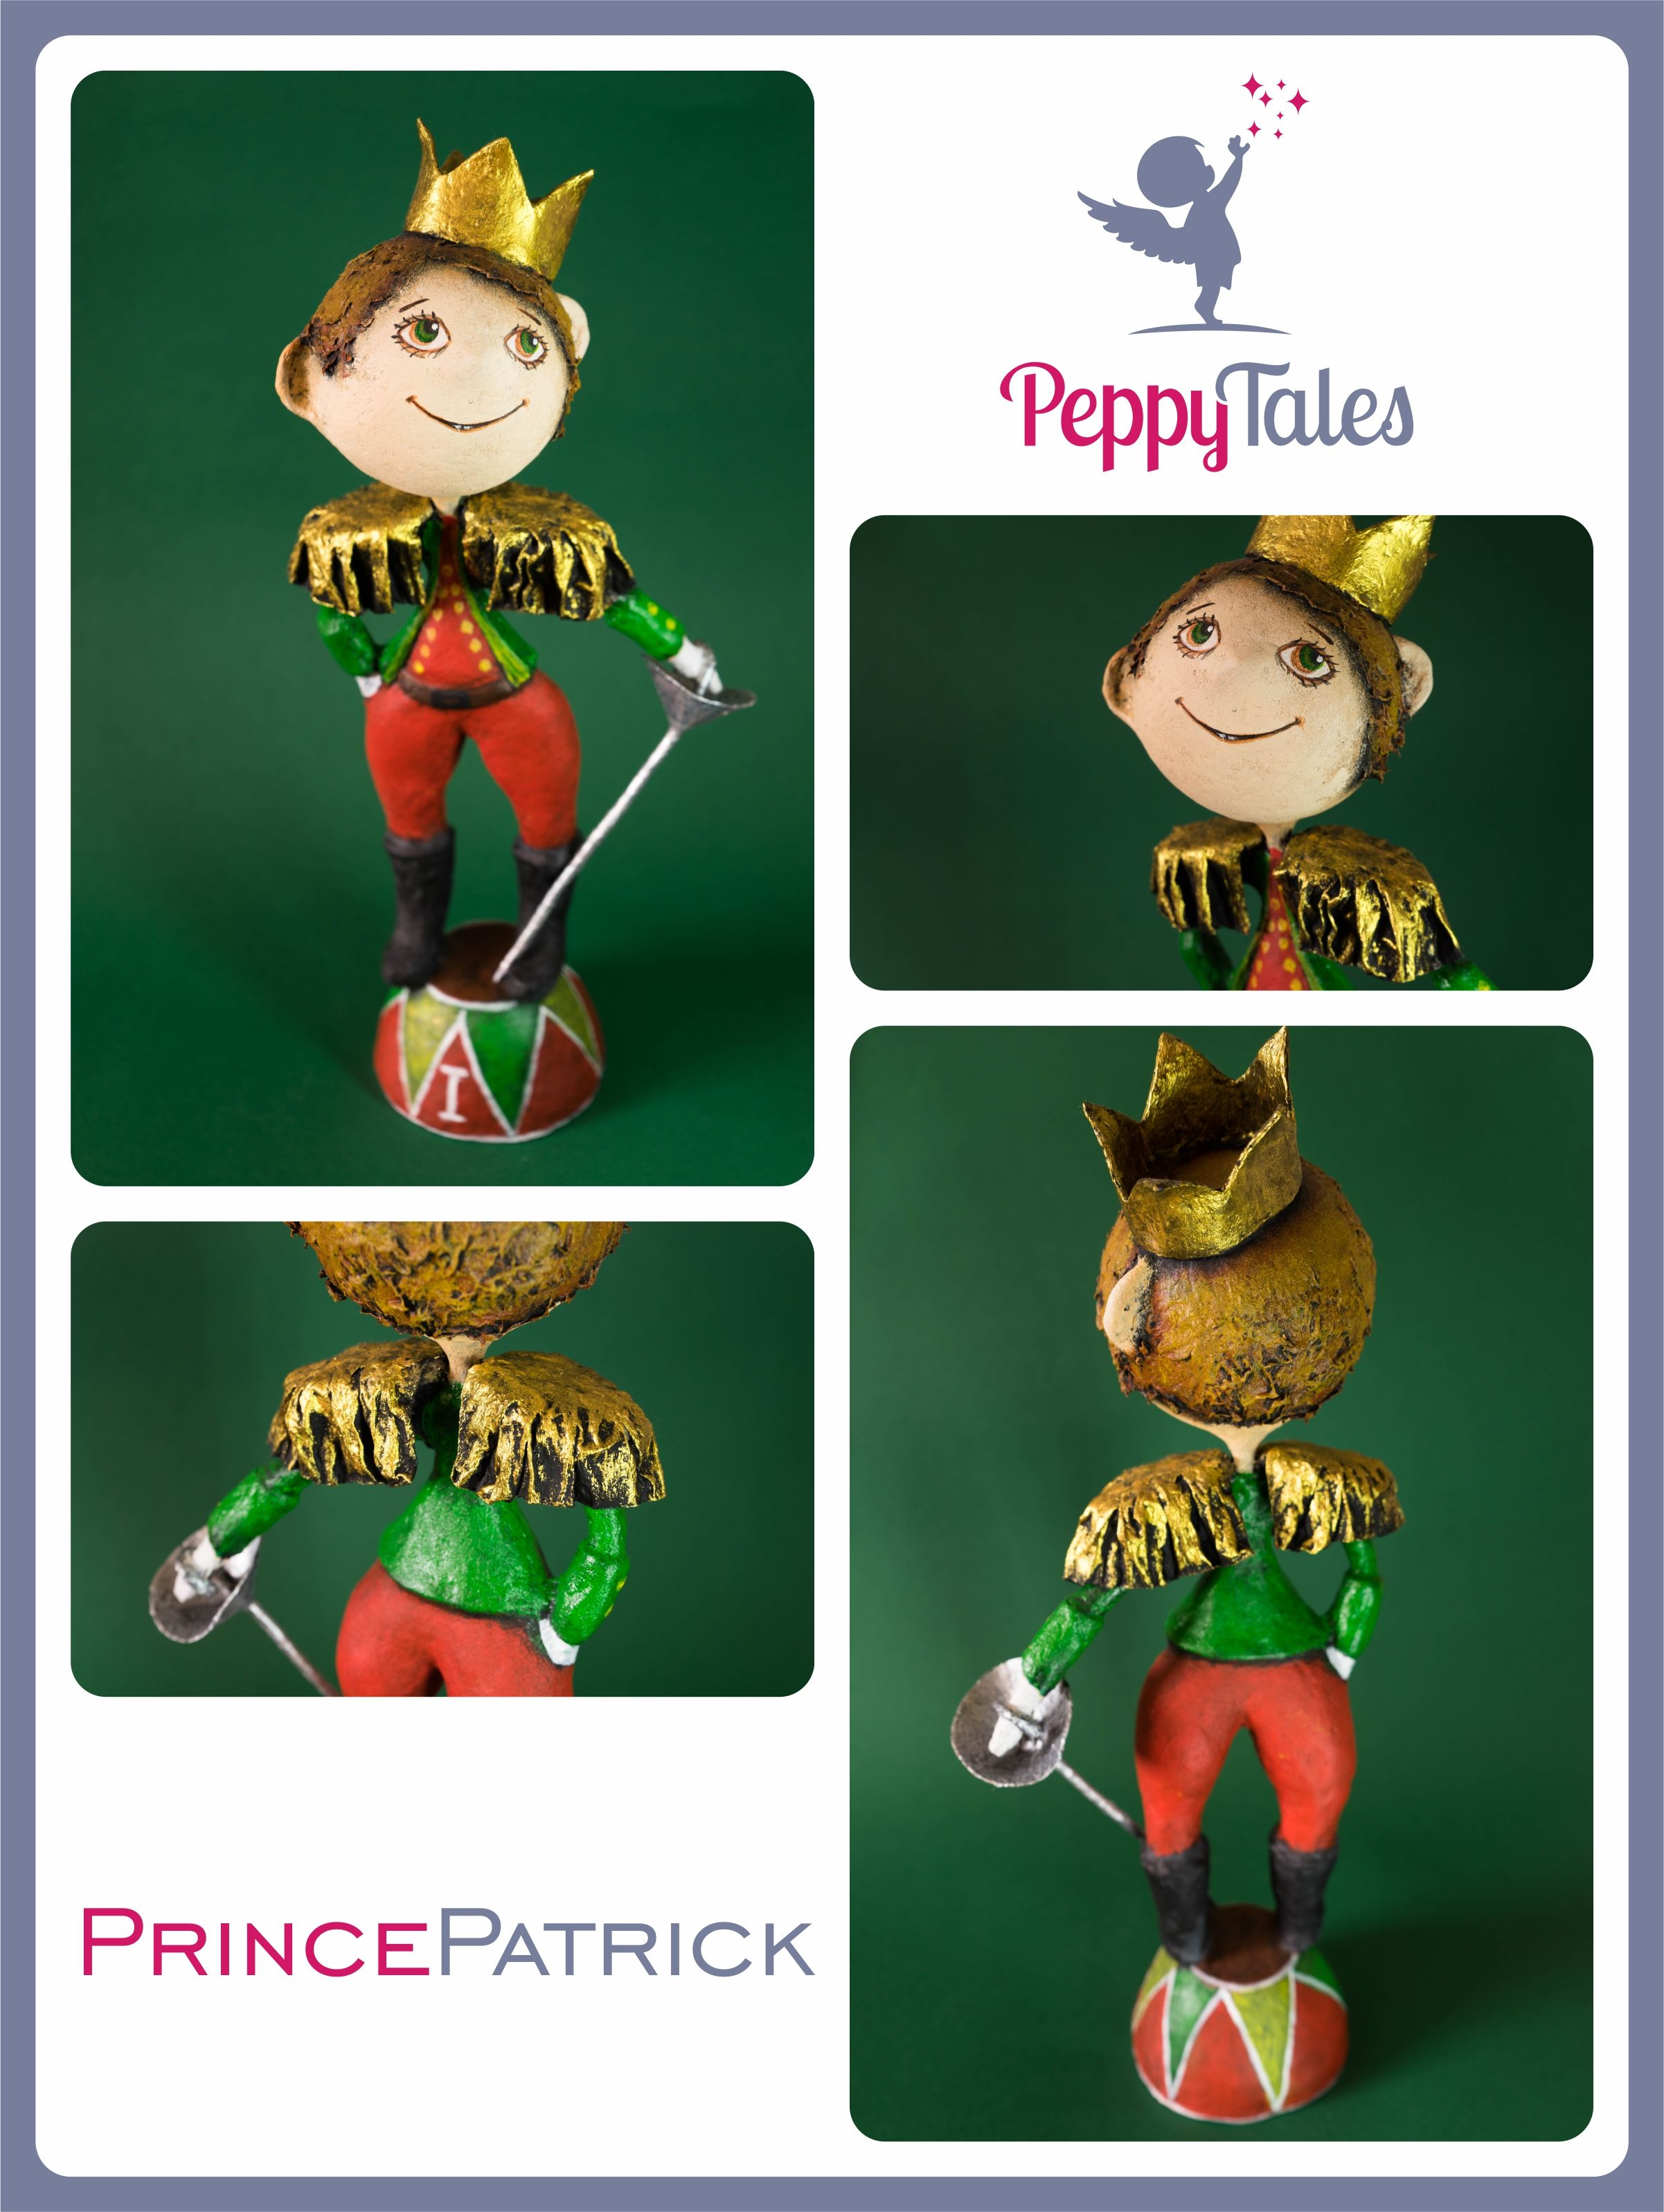 PRINCE PATRICK is a new creation from PeppyTales art studio.  This young prince stands tall and proud on his colorful stand, an imaginative smile dancing across his face. His bright green eyes look off into the distance, peaceful and pleasant as ever. A shining gold crown tells the world he's a little prince, while his epaulettes and silver rapier show us his sense of decorum. Prince Patrick is fully dressed in red and green, white gloves, and sports a head of curly brown hair.